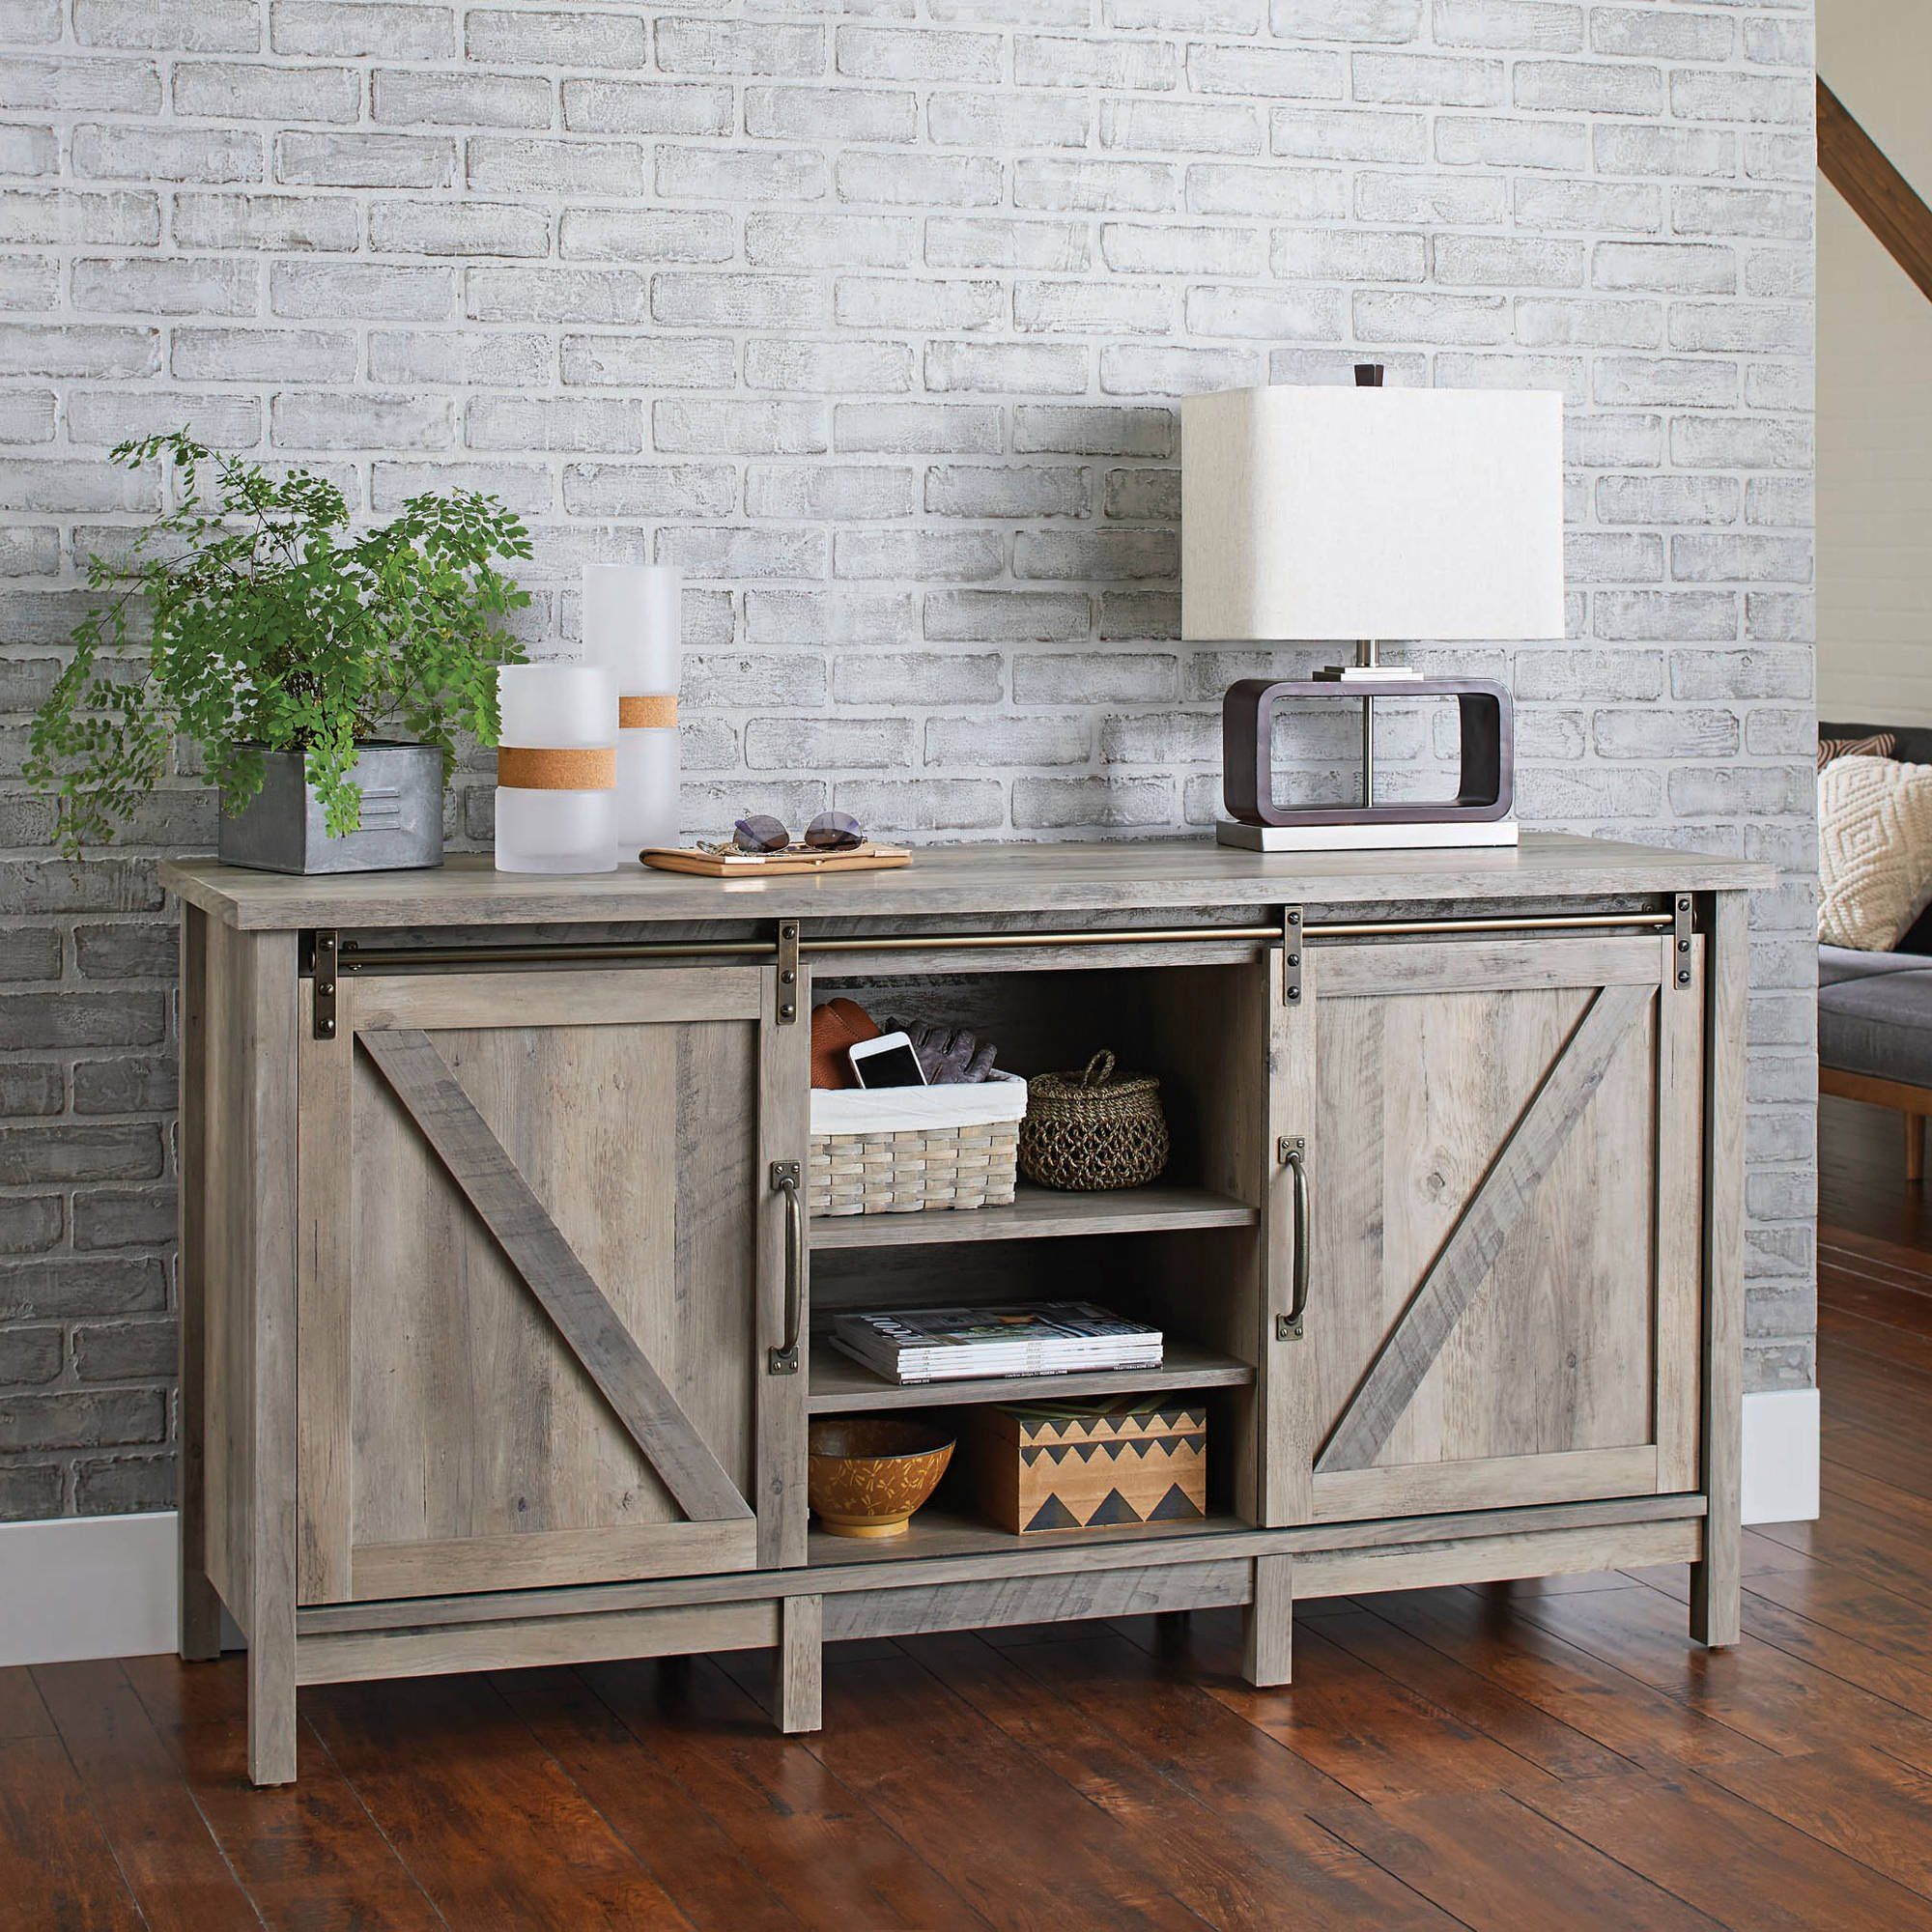 Better Homes Gardens Modern Farmhouse Tv Stand For Tvs Up To 70 Rustic Gray Finish Walmart Com In 2021 Farmhouse Style Tv Stand Farmhouse Tv Stand Rustic Media Cabinets